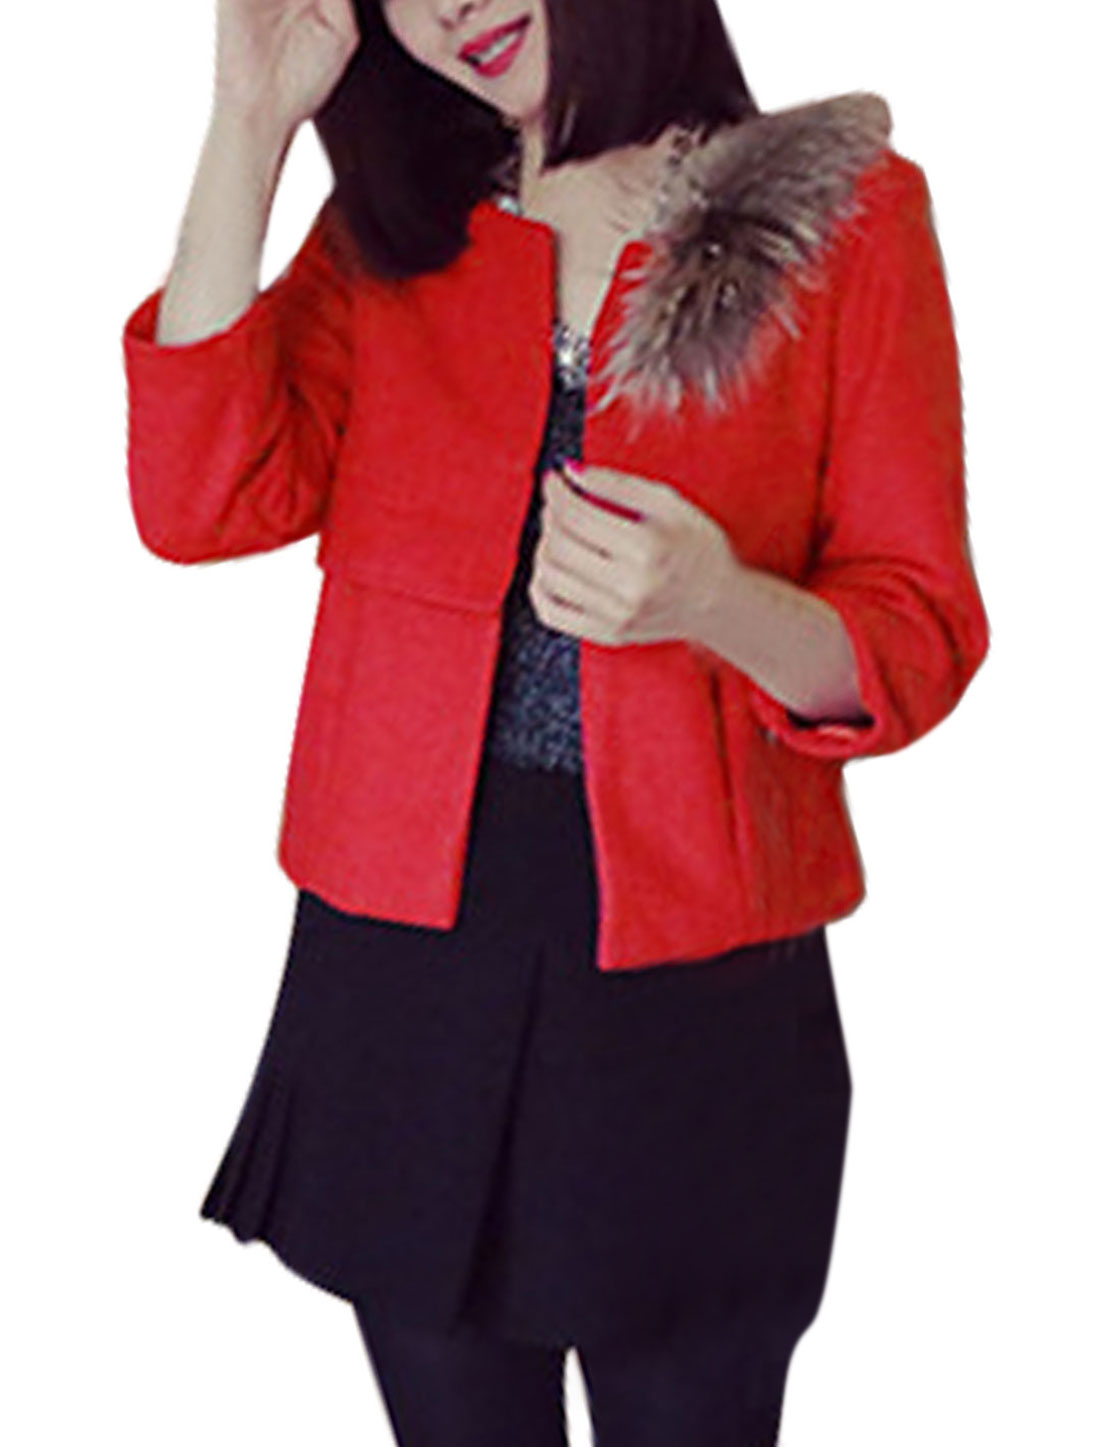 Ladies 3/4 Sleeves Plush Decor Red Belero Worsted Coat XS